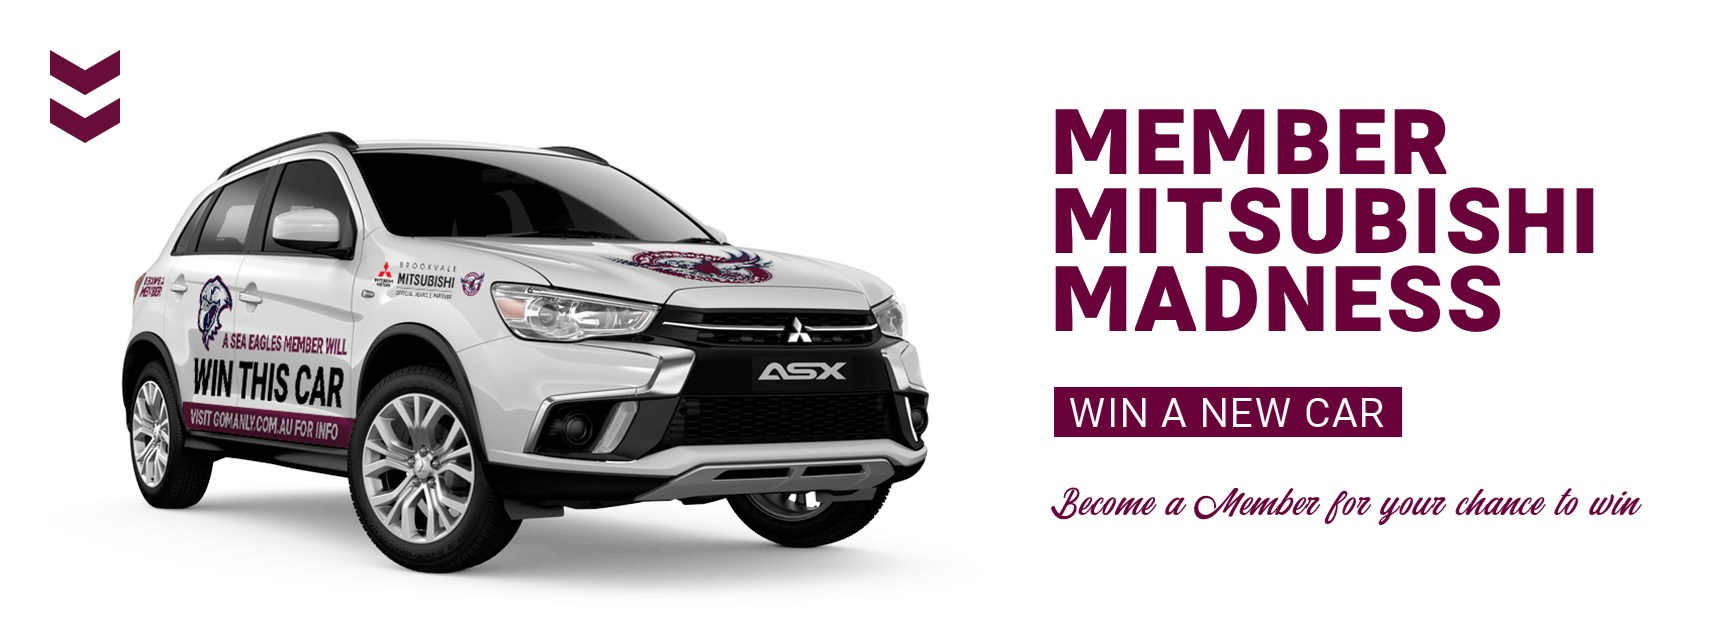 A Sea Eagles member will WIN THIS CAR!